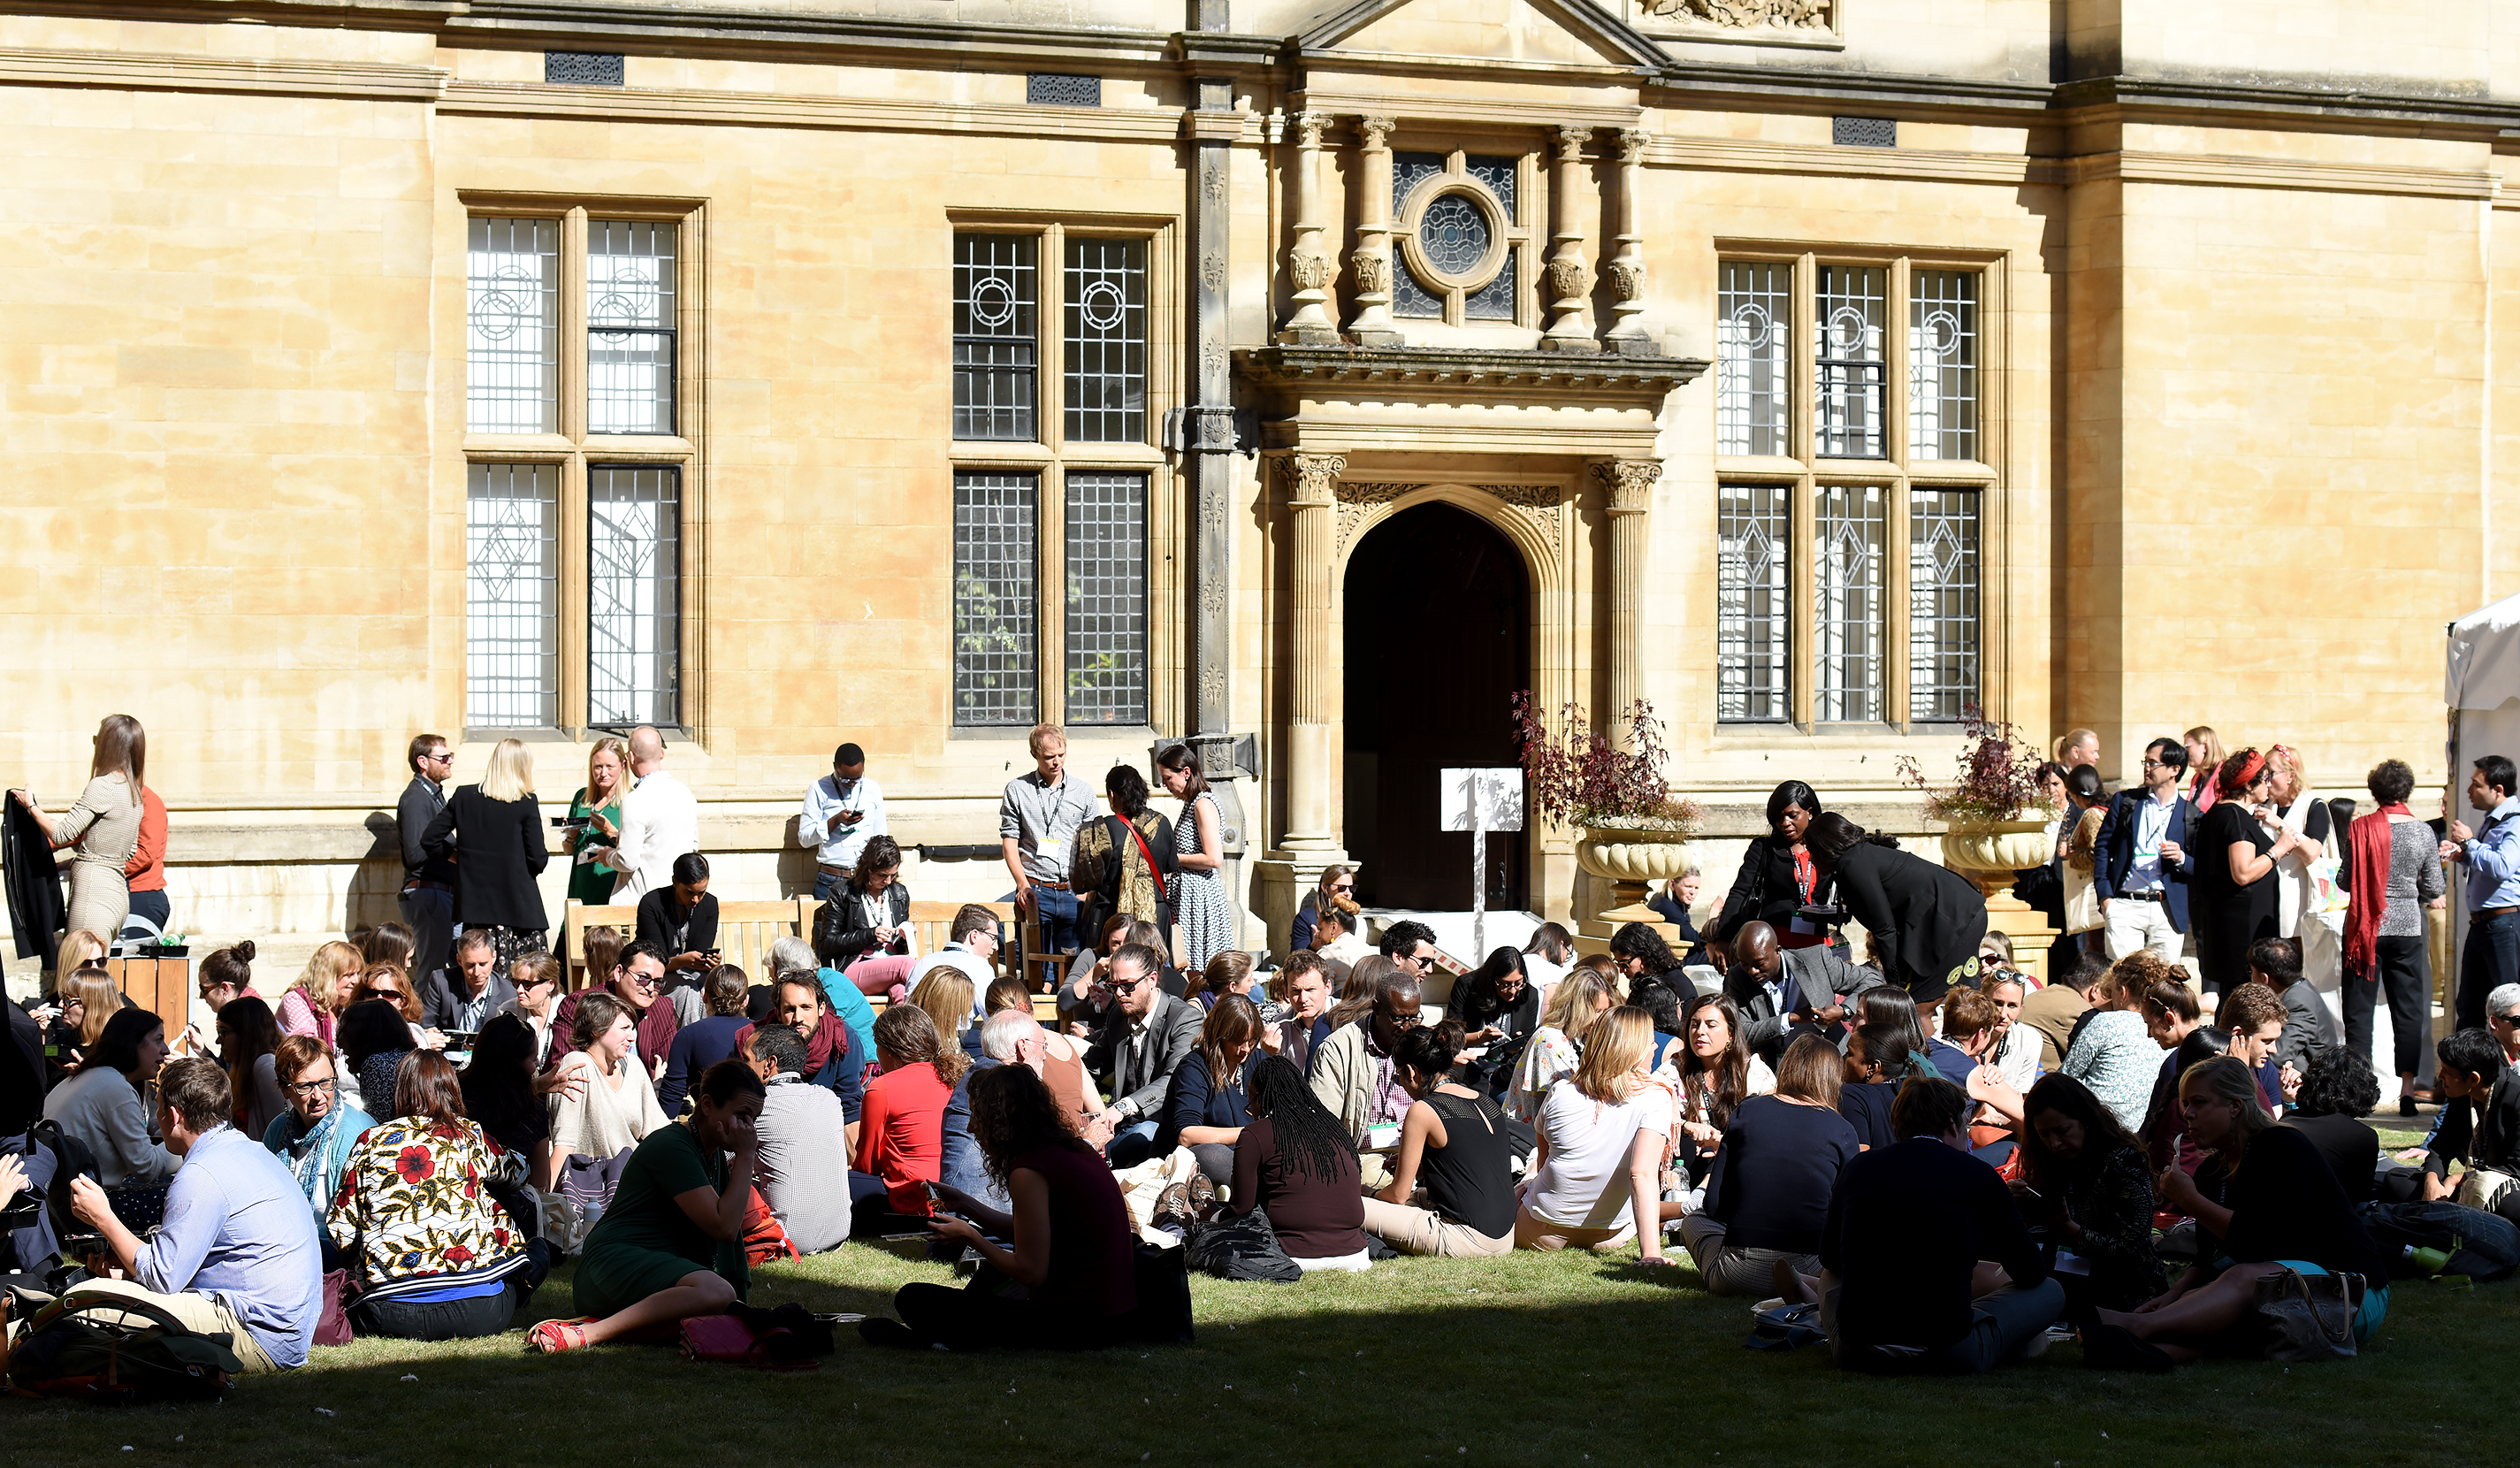 Conference delegates sitting on grass at lunchtime in the sunshine of the quod at Examination Schools